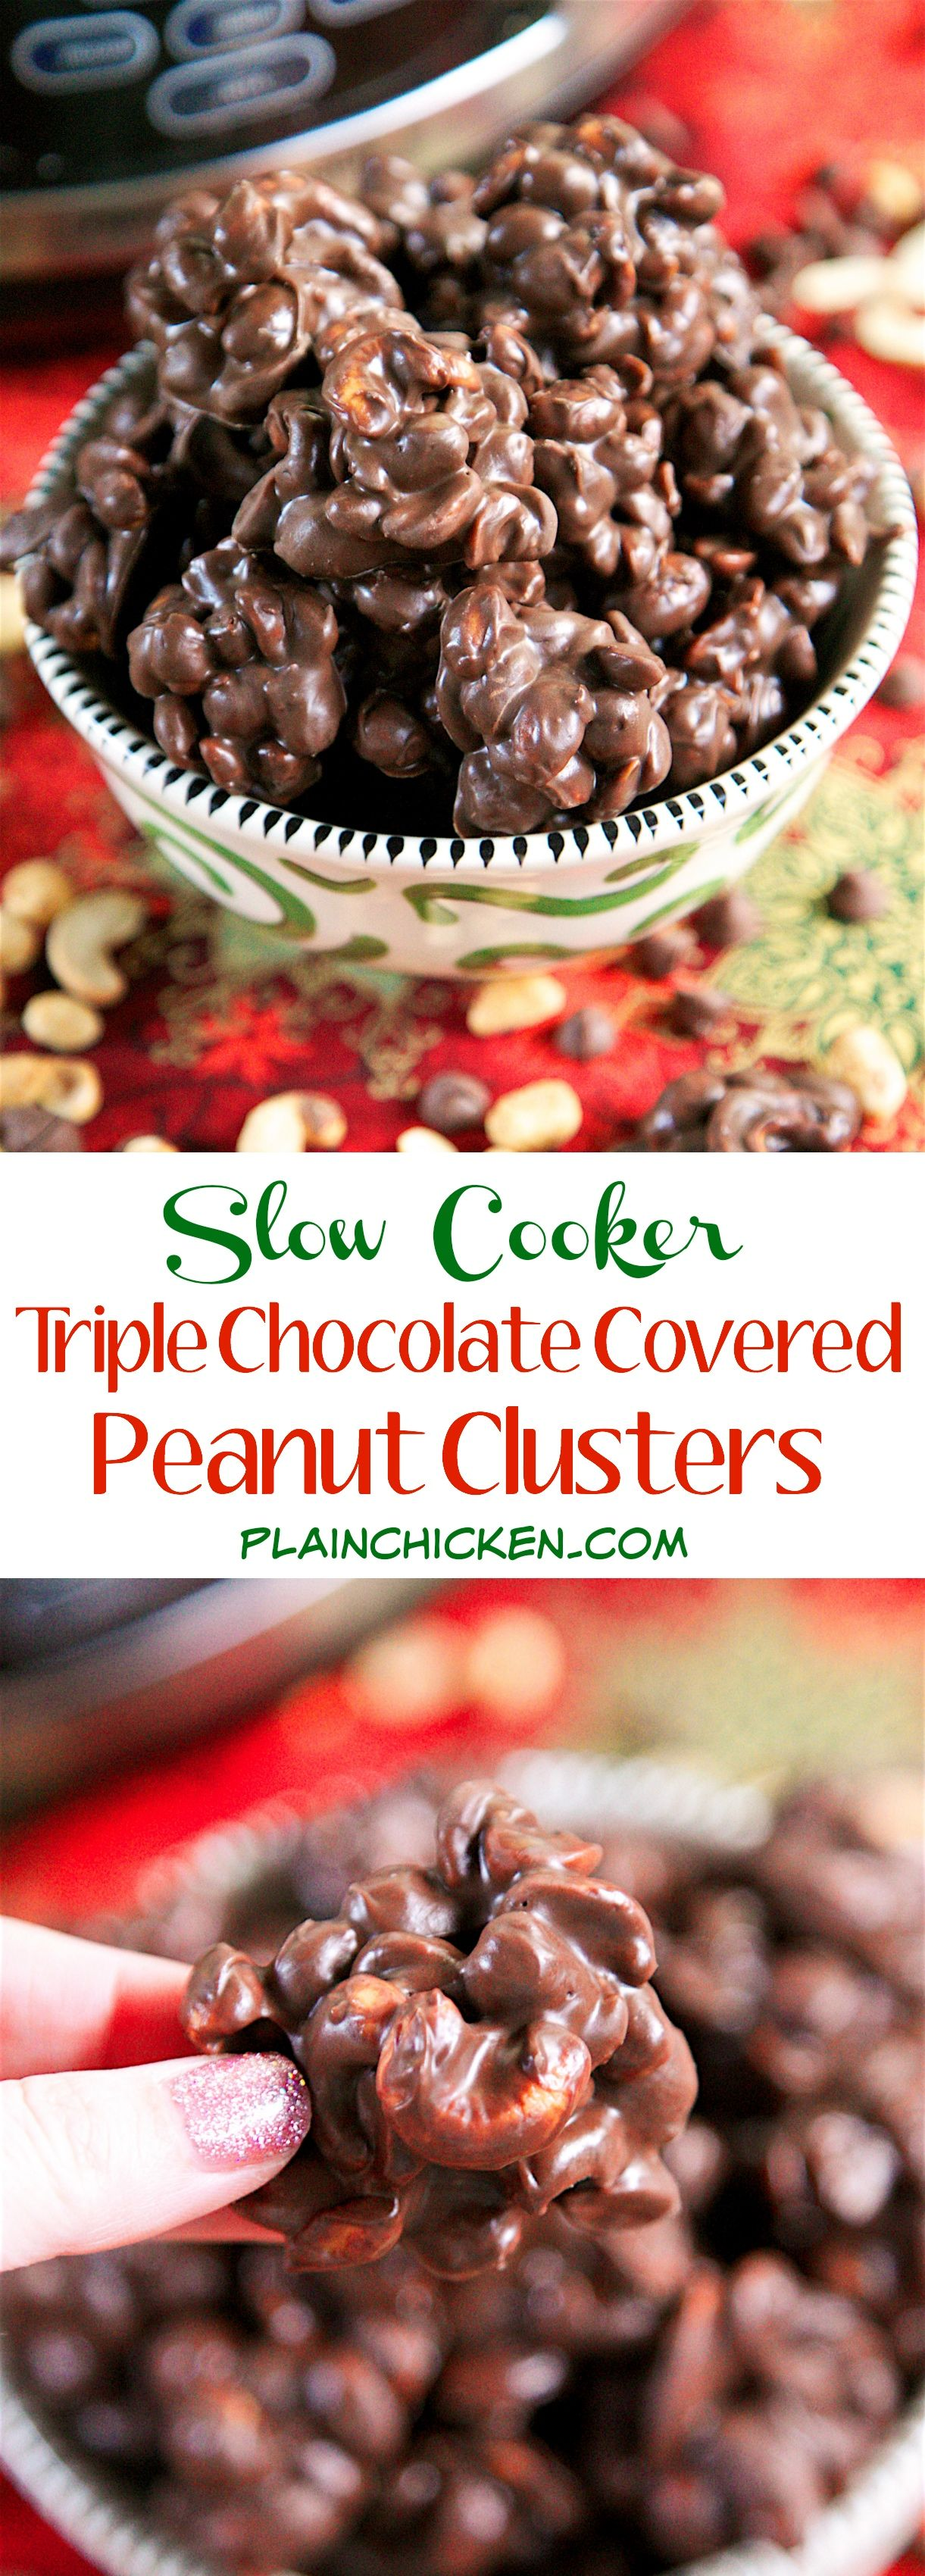 Slow Cooker} Triple Chocolate Covered Peanut Clusters | Jars ...